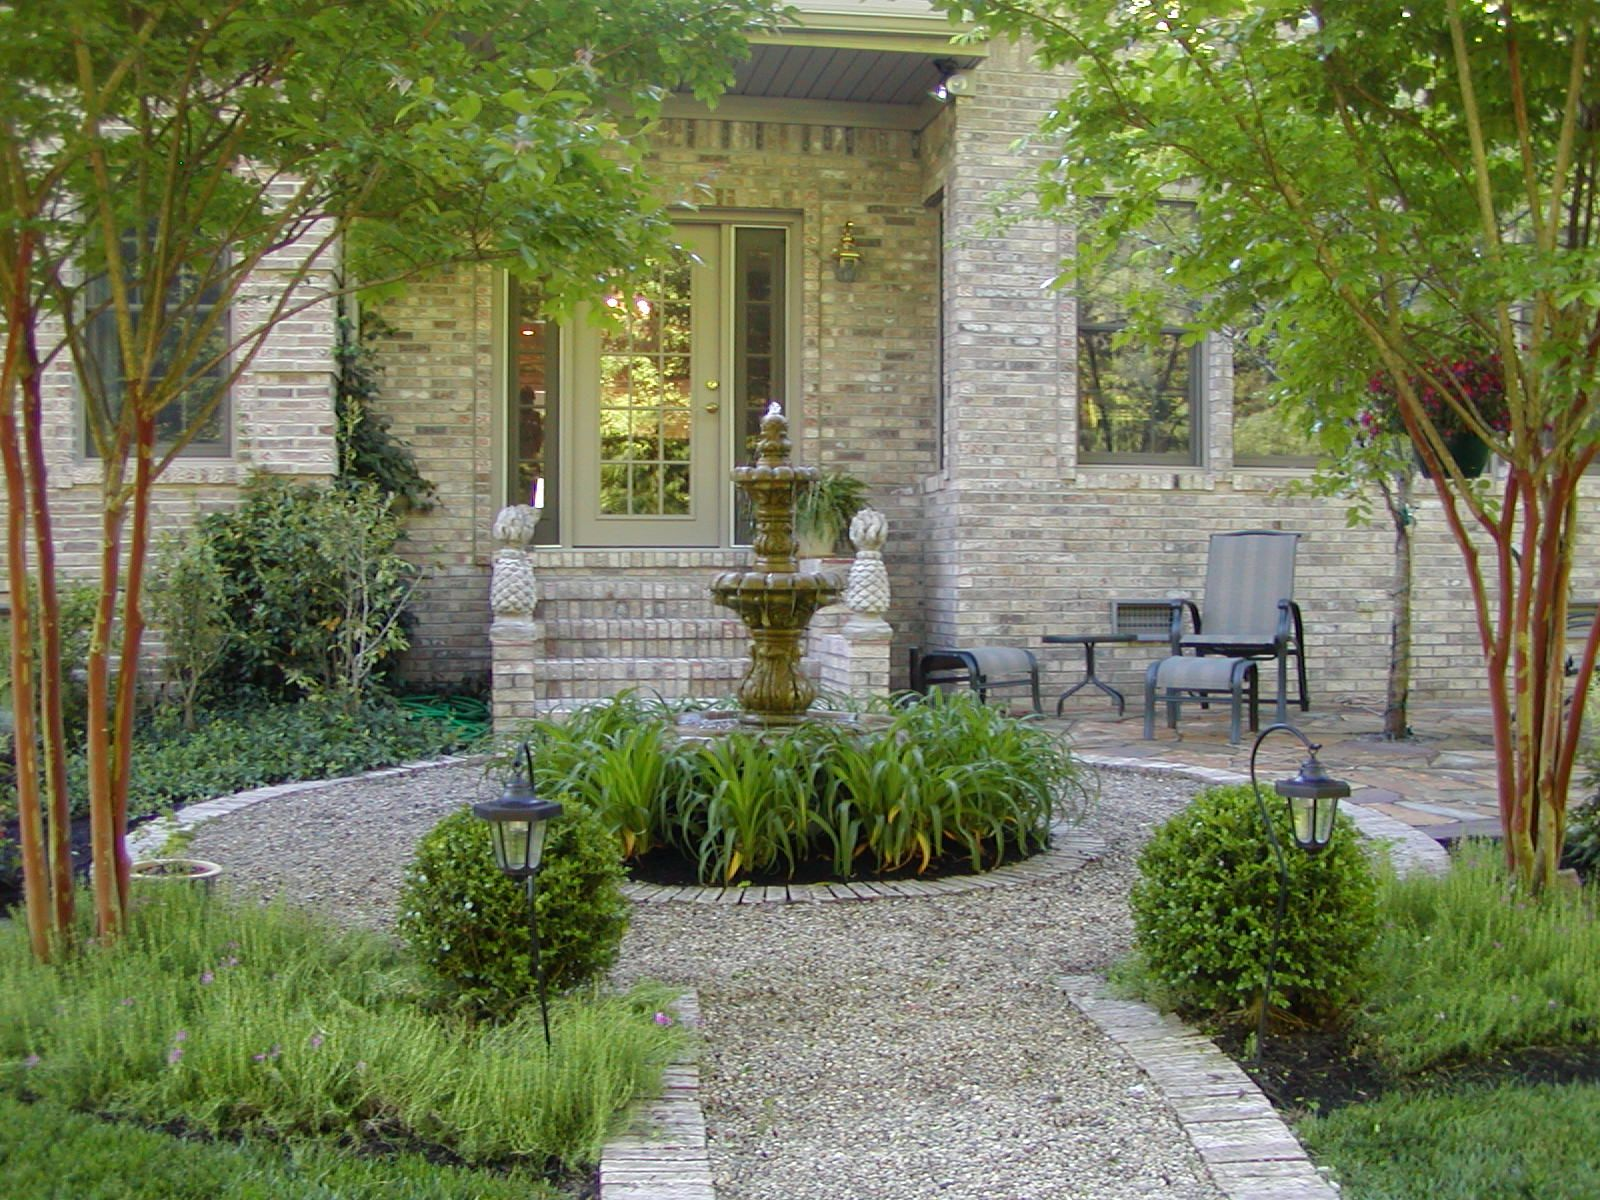 The Beautiful Garden Was Designed By Landscape Architect Helen Grivich Description From Pinterest Com French Country Garden Patio Landscaping Pea Gravel Patio